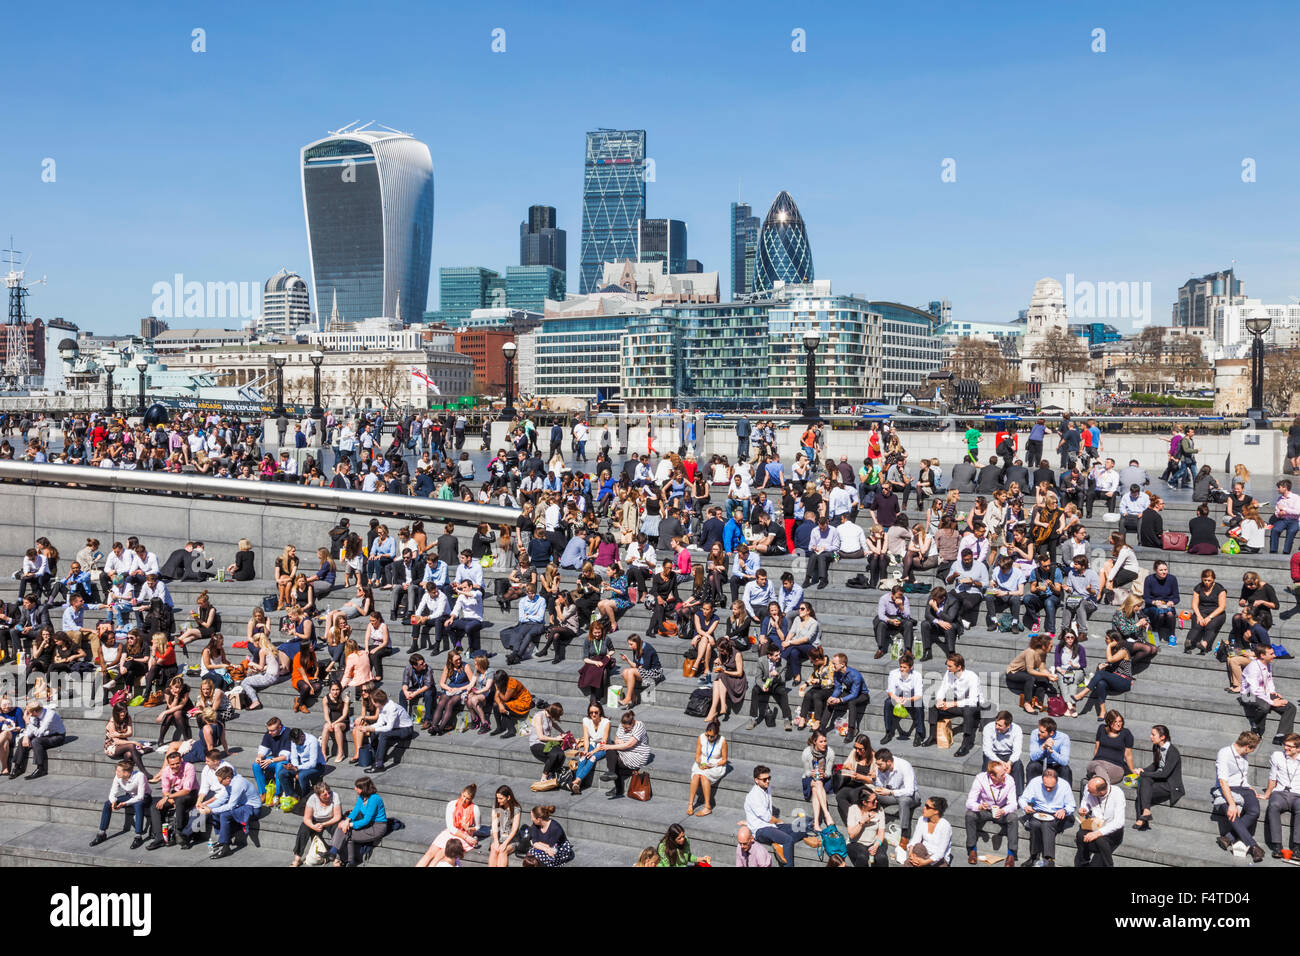 England, London, Office Workers and City, Skyline - Stock Image